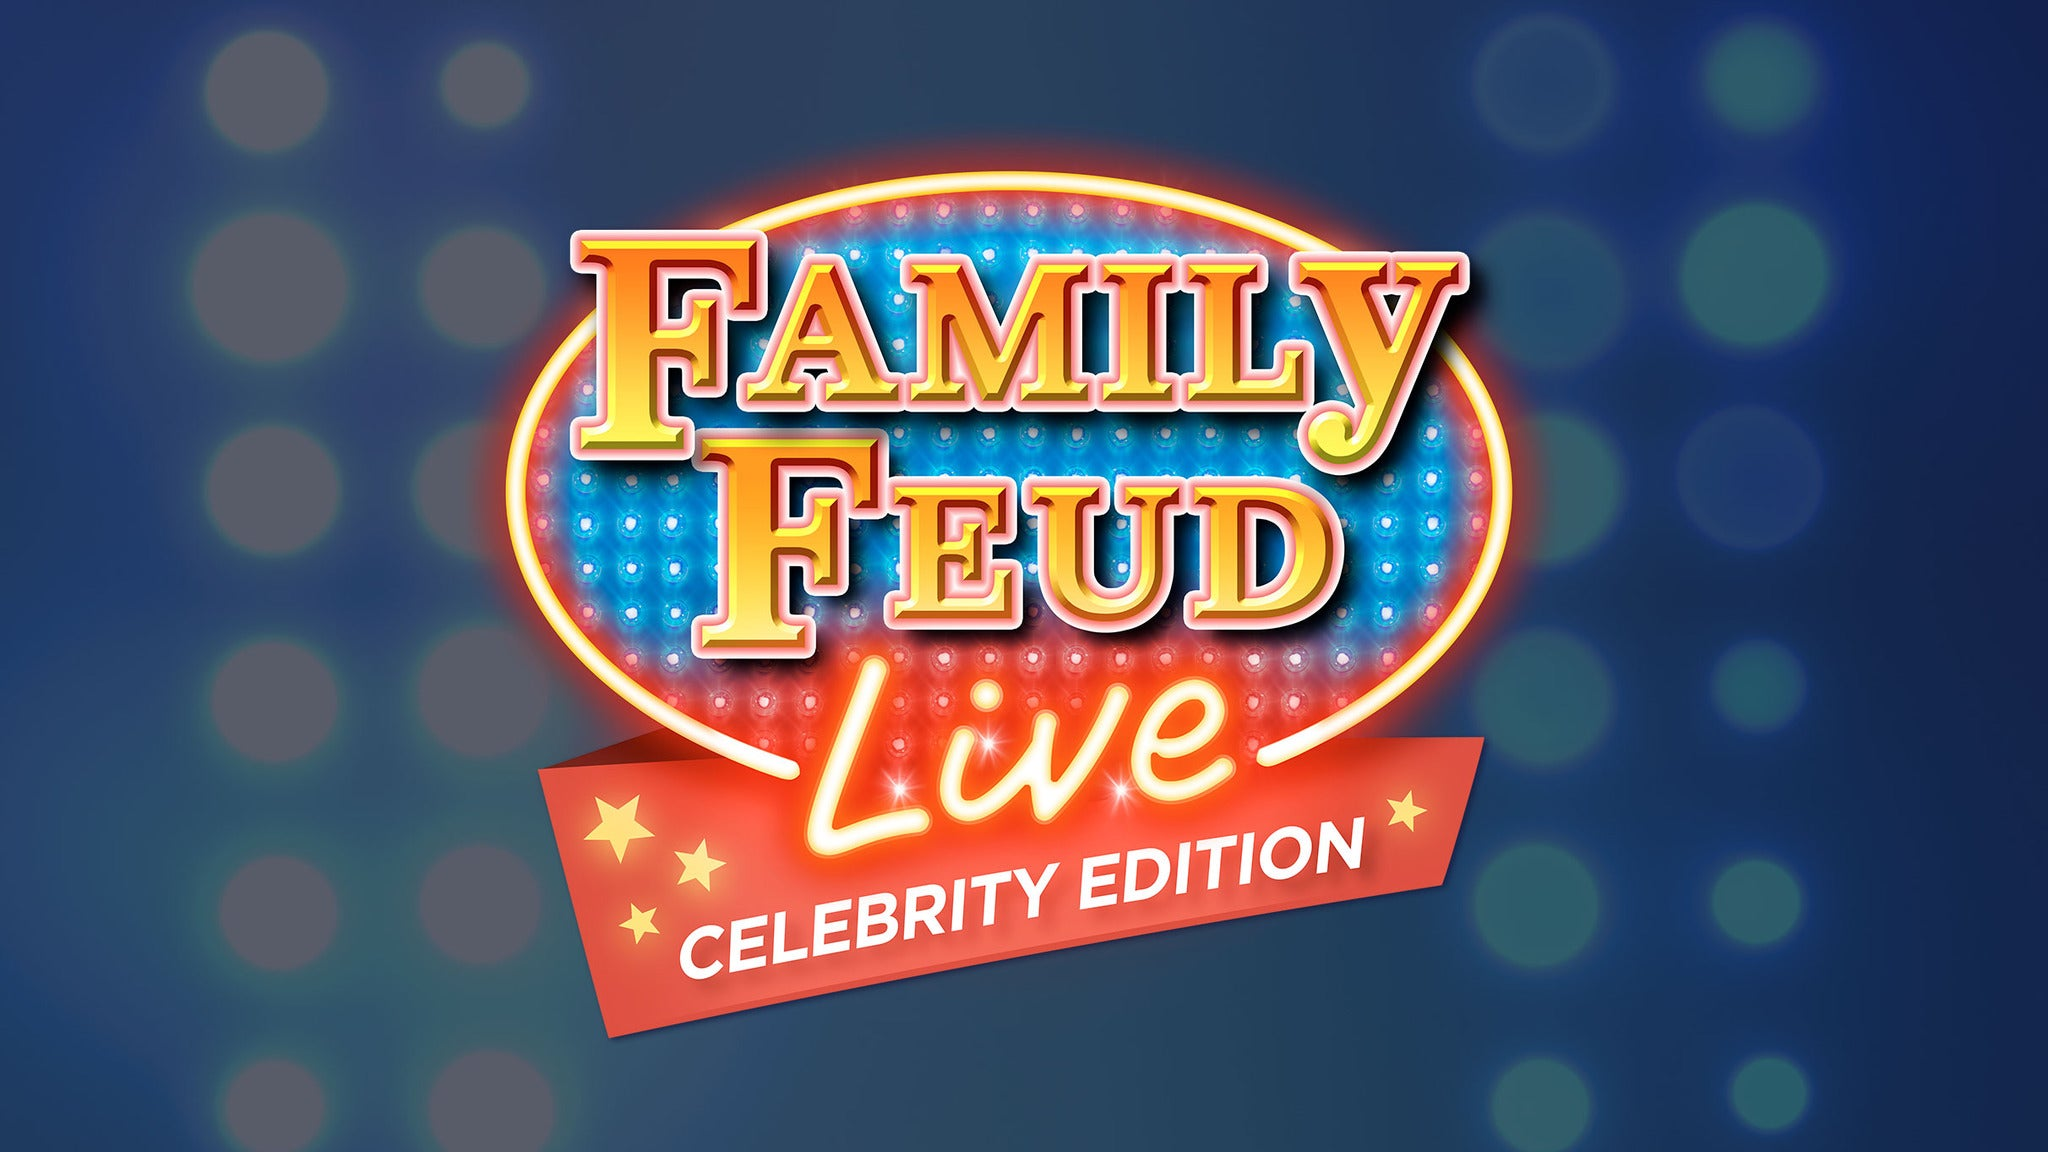 Family Feud Live at Live! Center Stage